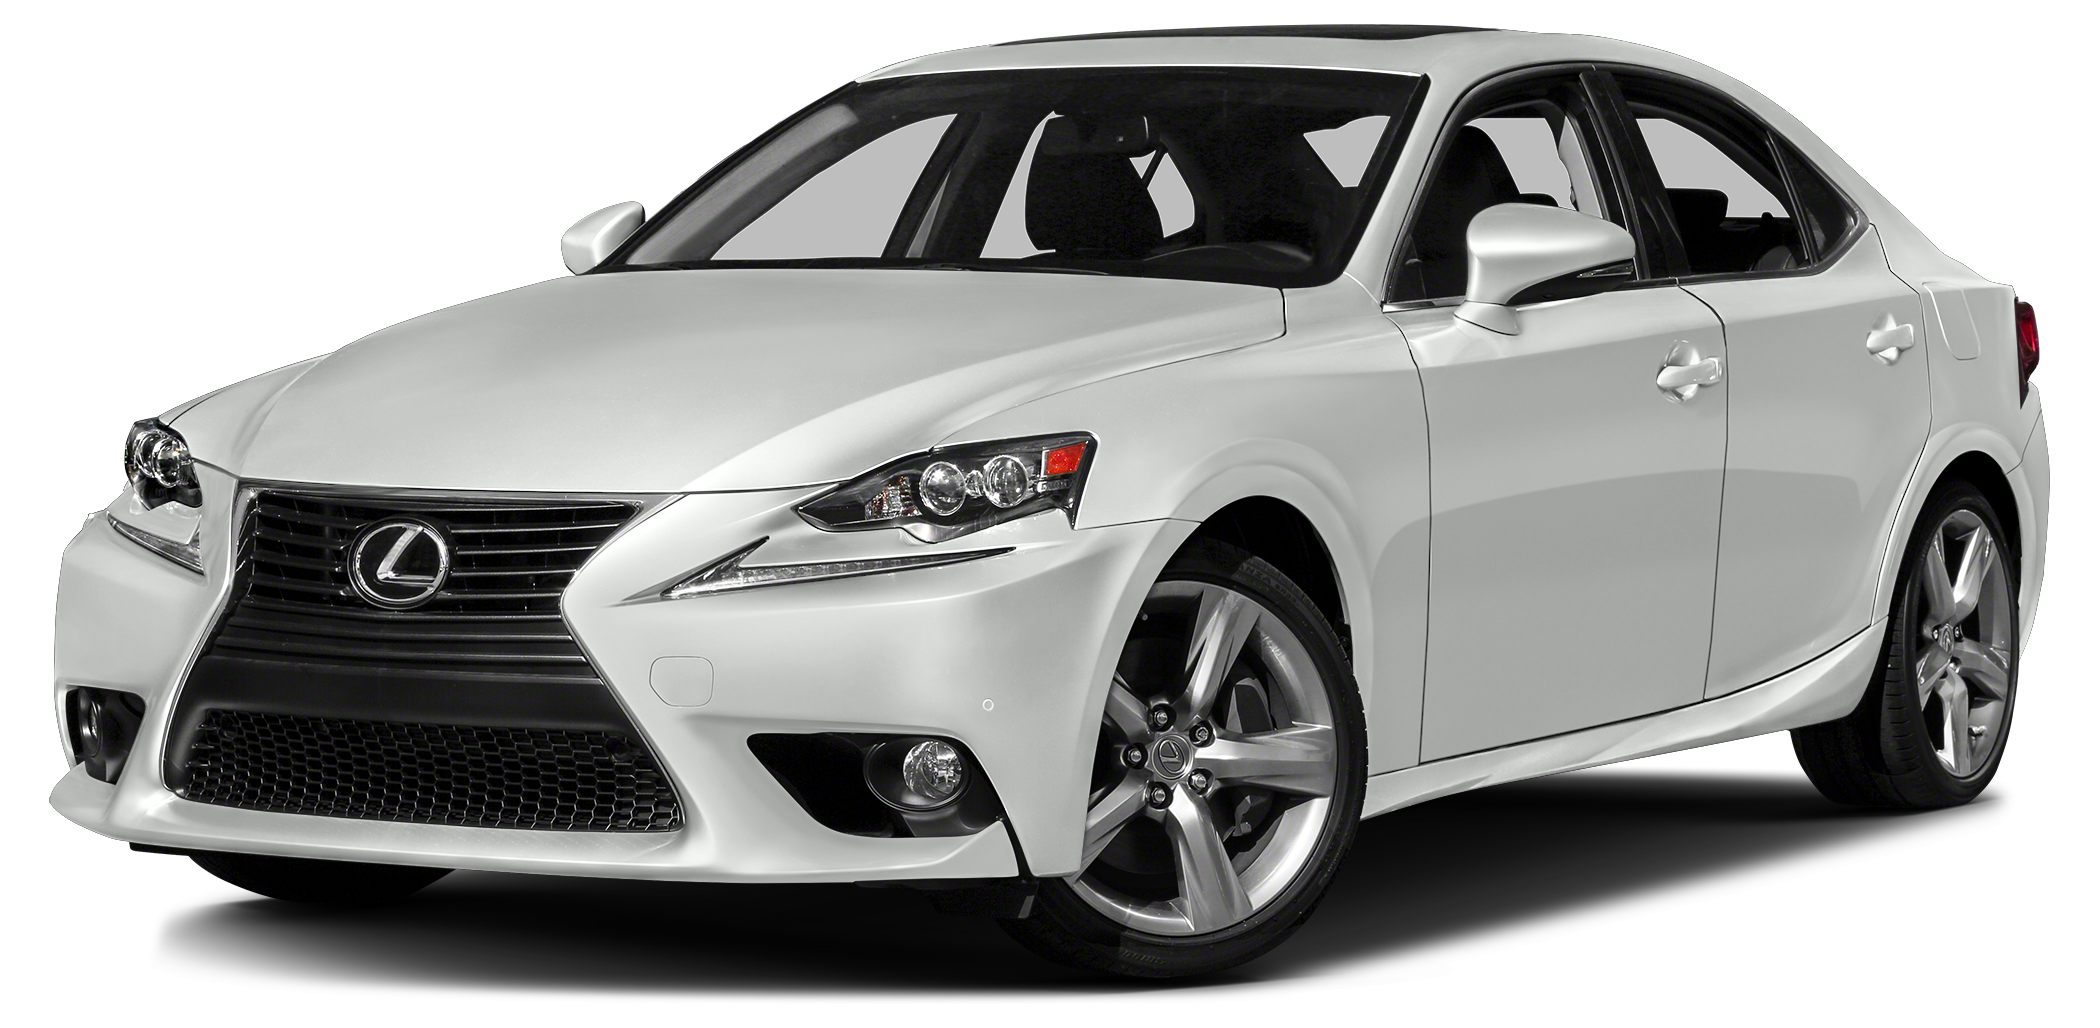 2014 Lexus IS 350 Base Vehicle Detailed Recent Oil Change and Passed Dealer Inspection Traction